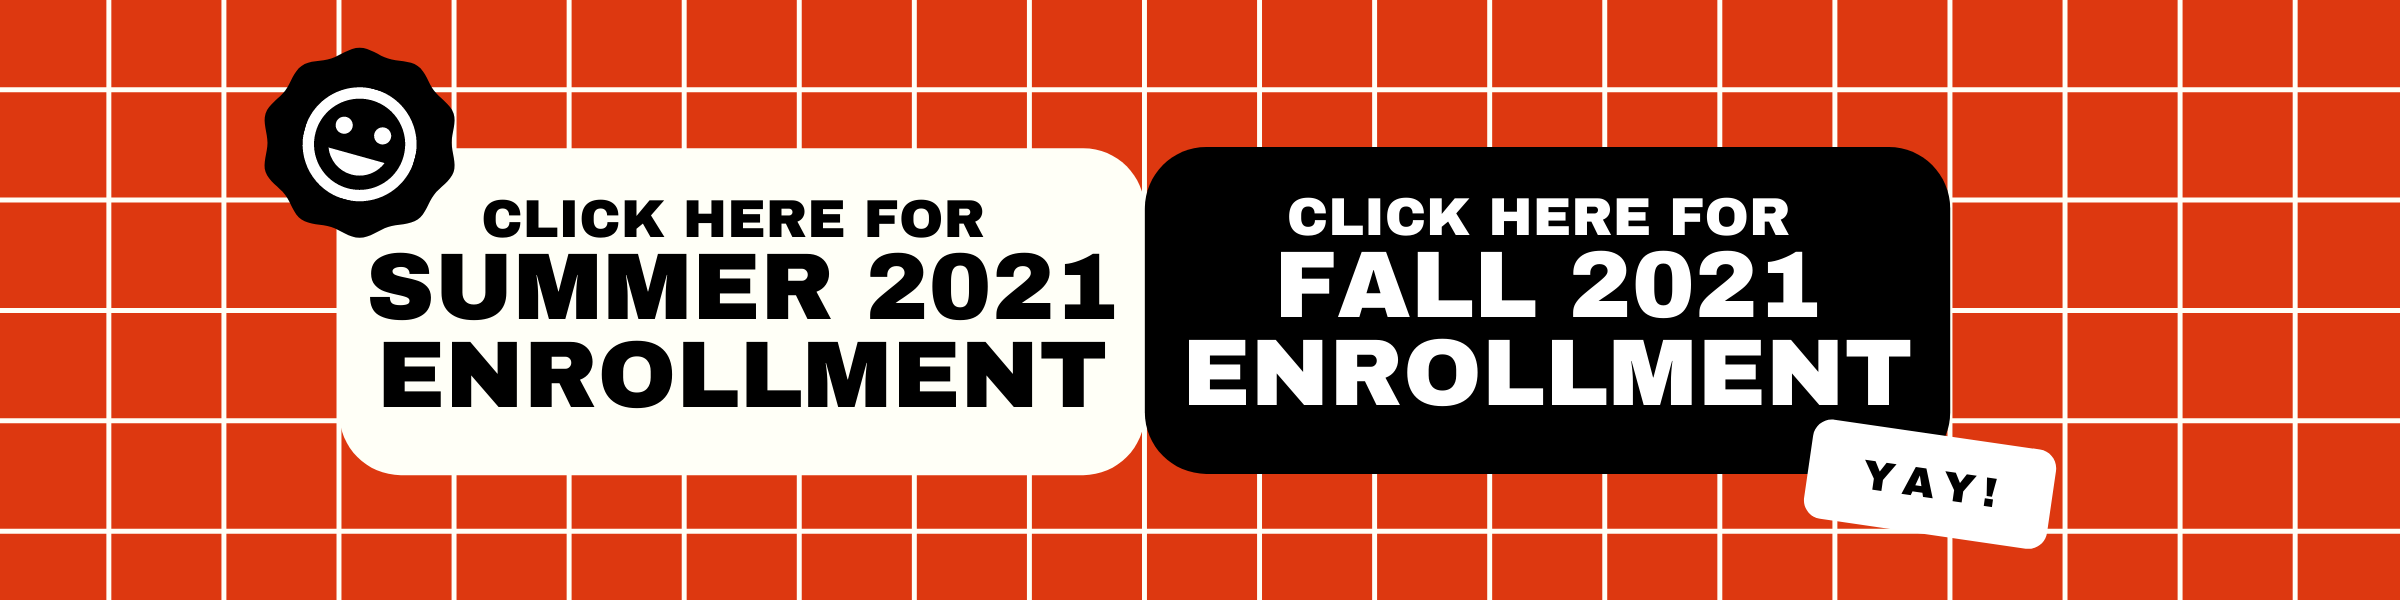 Enrollment Slider